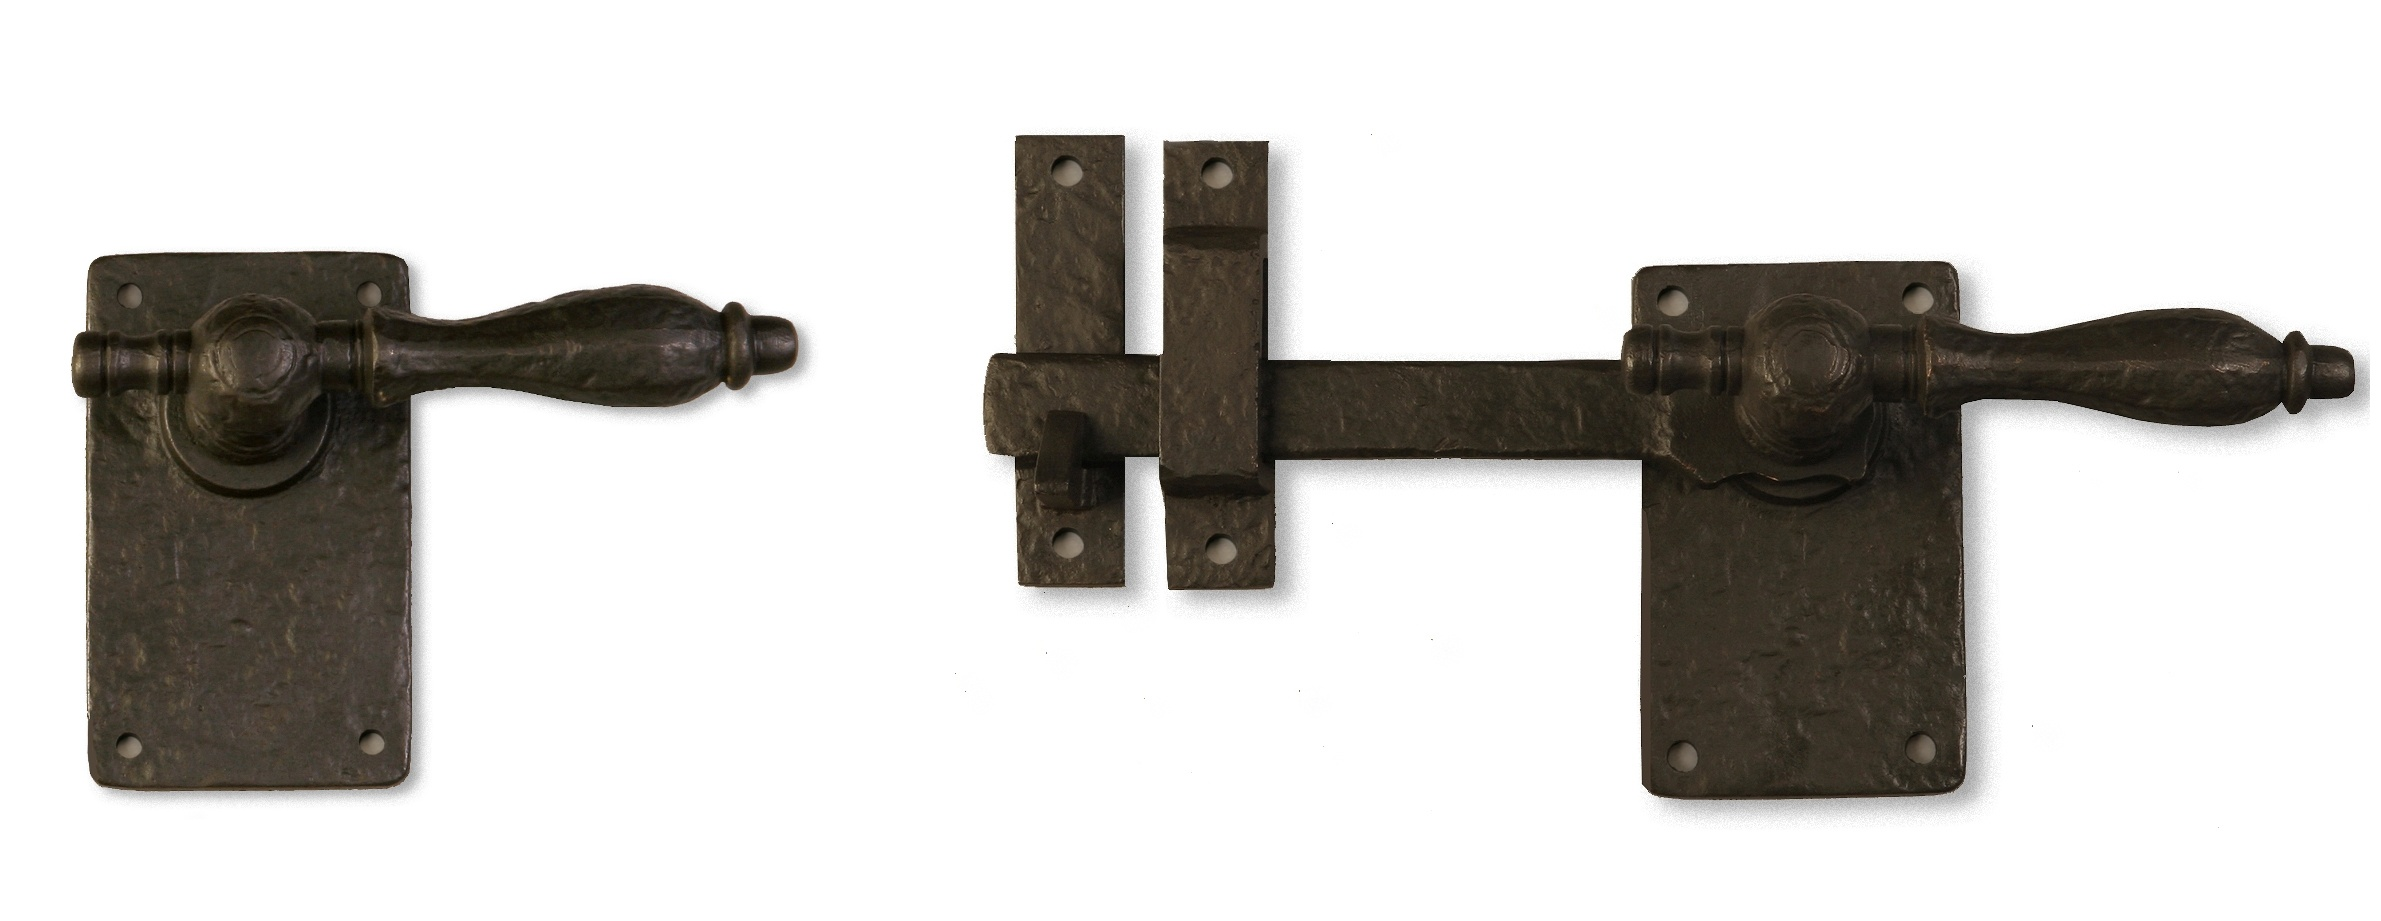 Dark Bronze Lever Gate Latch with rounded handle, a rustic and traditional gate latch